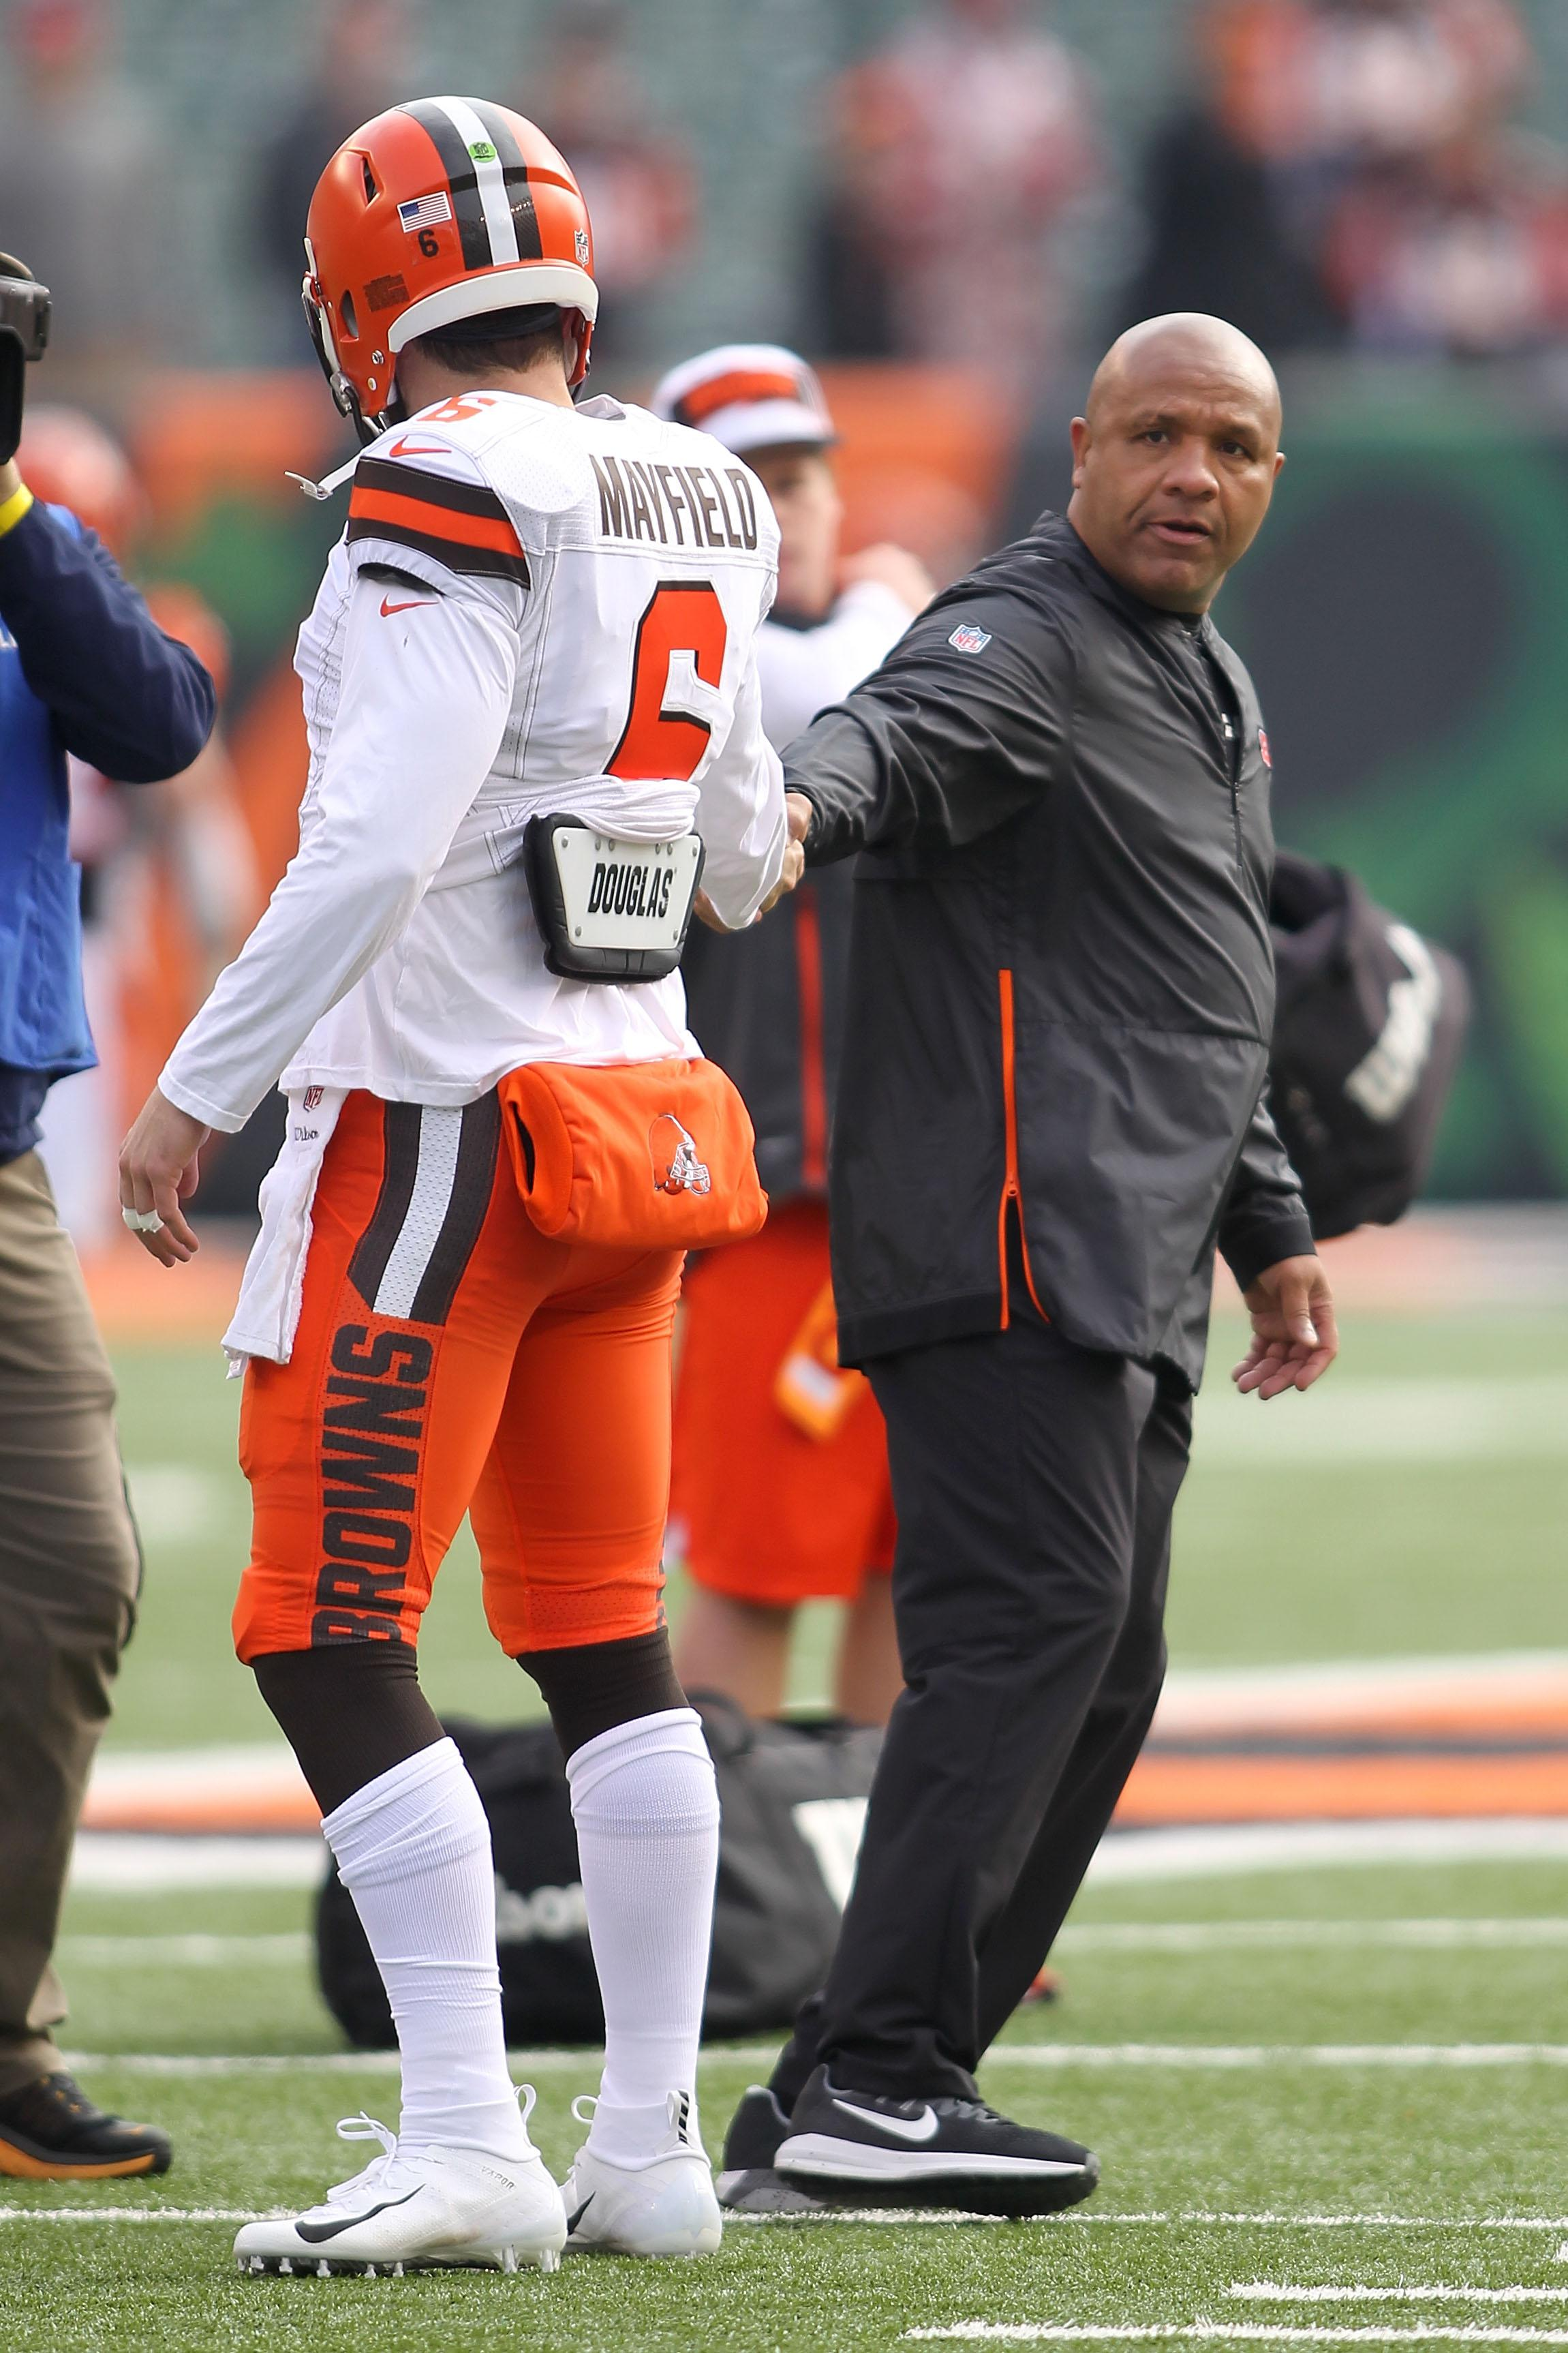 CINCINNATI, OH - NOVEMBER 25:  Special assistant to the head coach Hugh Jackson of the Cincinnati Bengals shakes hands with Baker Mayfield #6 of the Cleveland Browns at Paul Brown Stadium on November 25, 2018 in Cincinnati, Ohio. (Photo by John Grieshop/Getty Images)